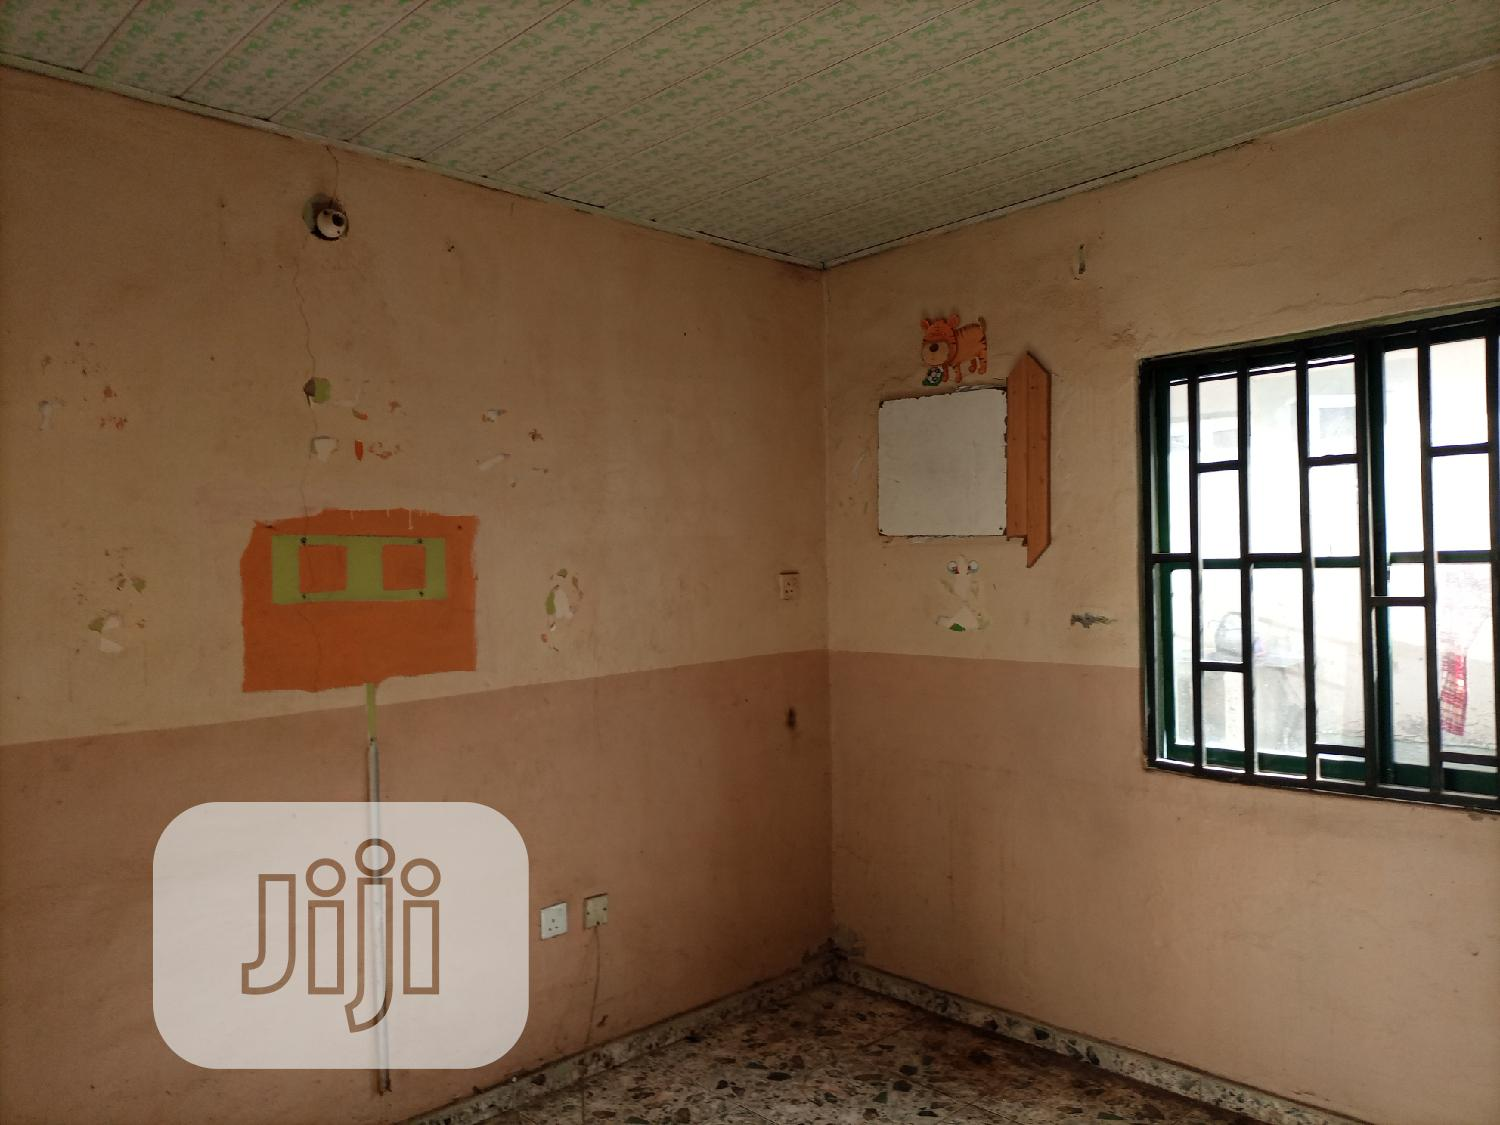 1 Bedroom Bungalow For Rent In Efab Life Camp | Houses & Apartments For Rent for sale in Jabi, Abuja (FCT) State, Nigeria